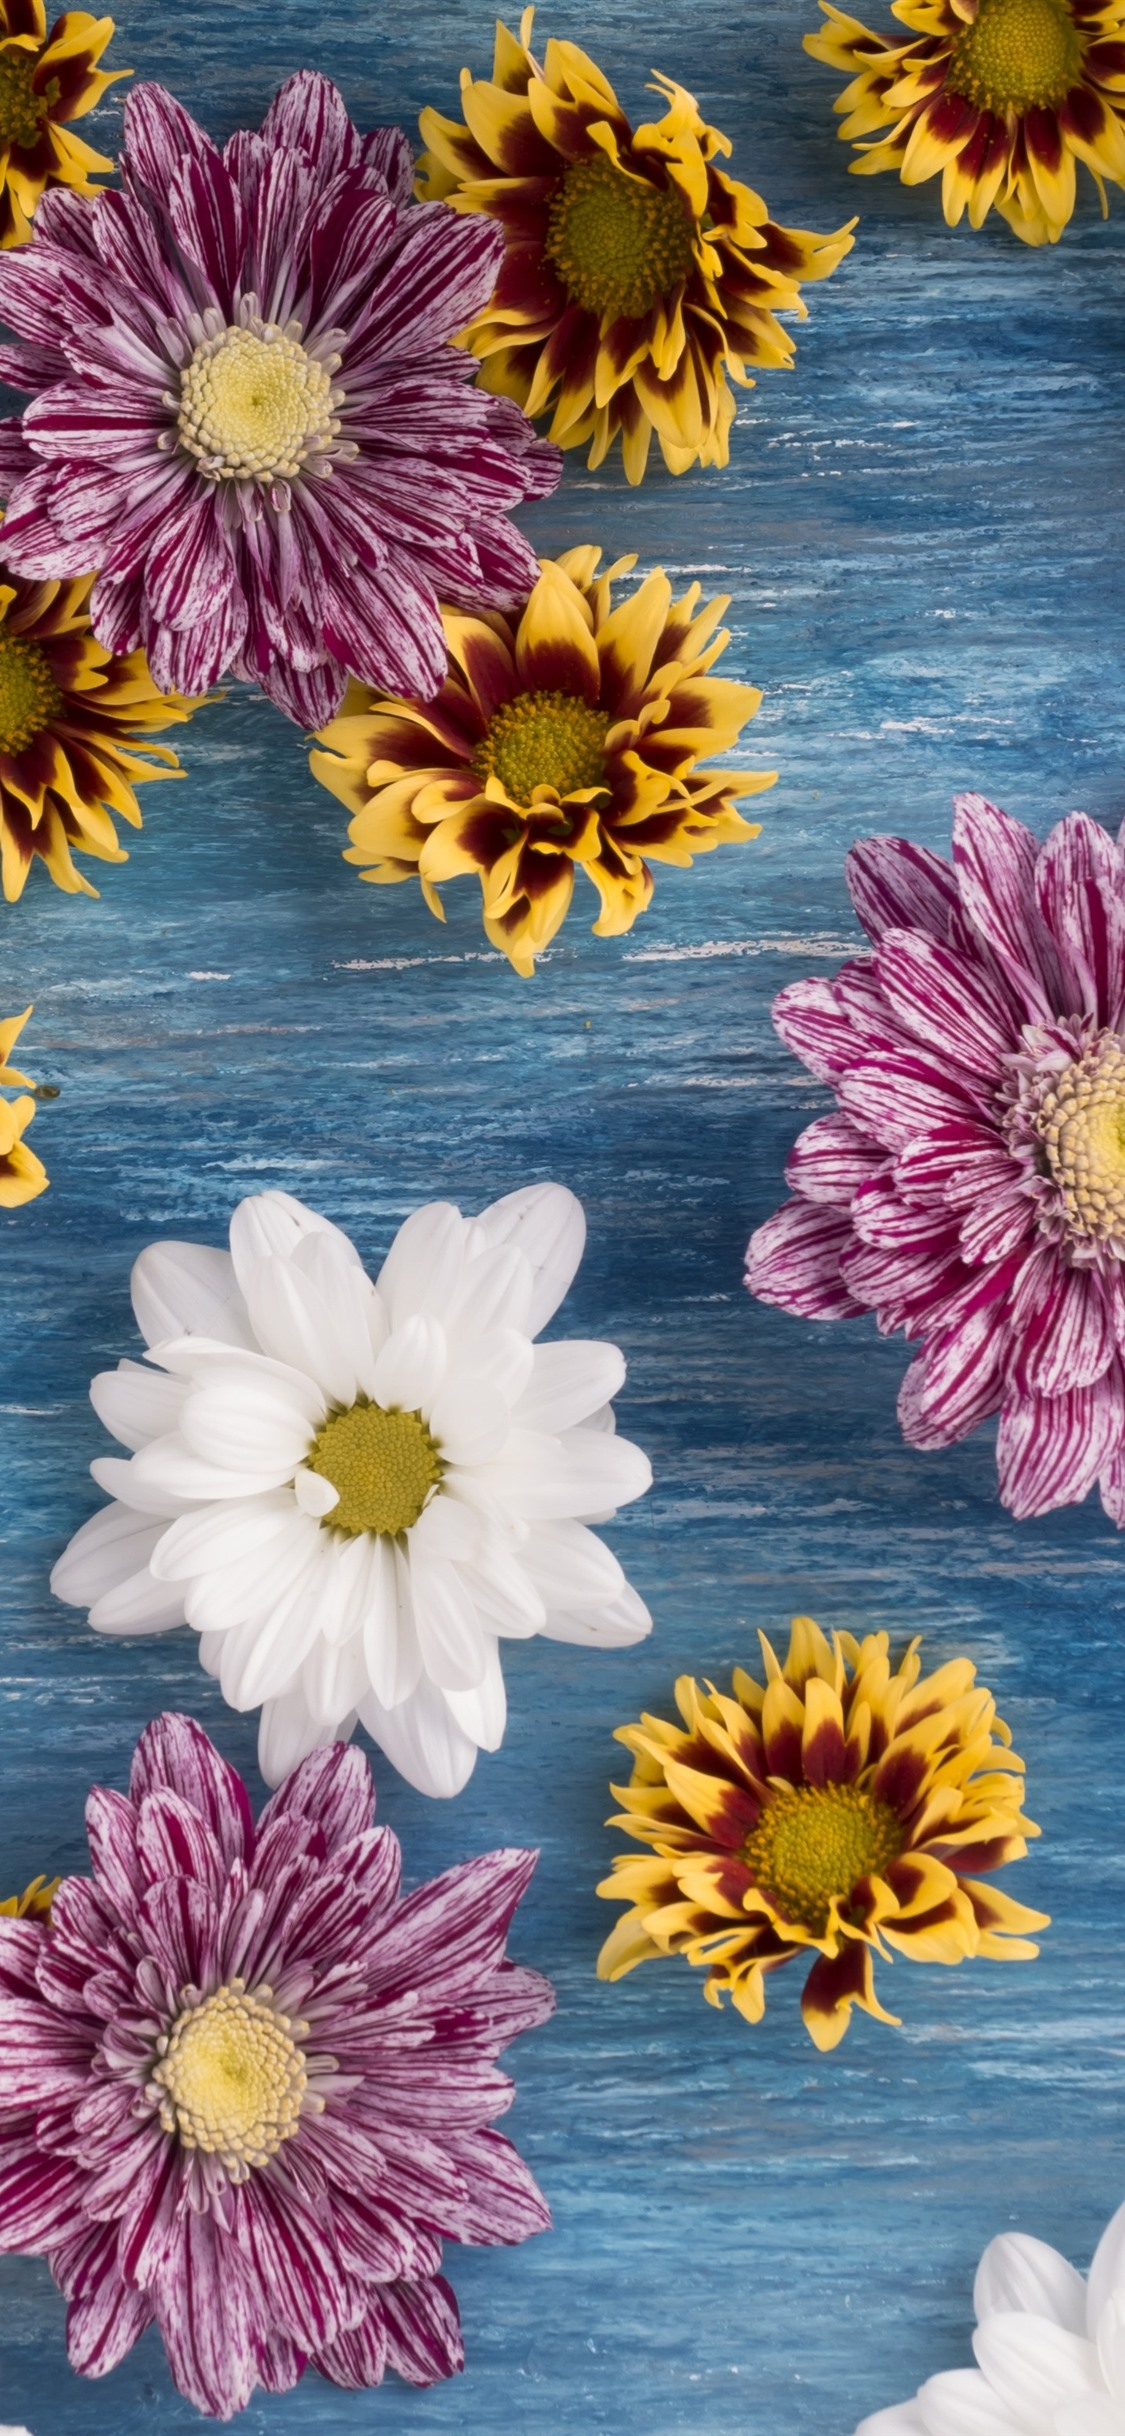 Many Flowers Chrysanthemum Pink White Yellow 1242x2688 Iphone 11 Pro Xs Max Wallpaper Background Picture Image